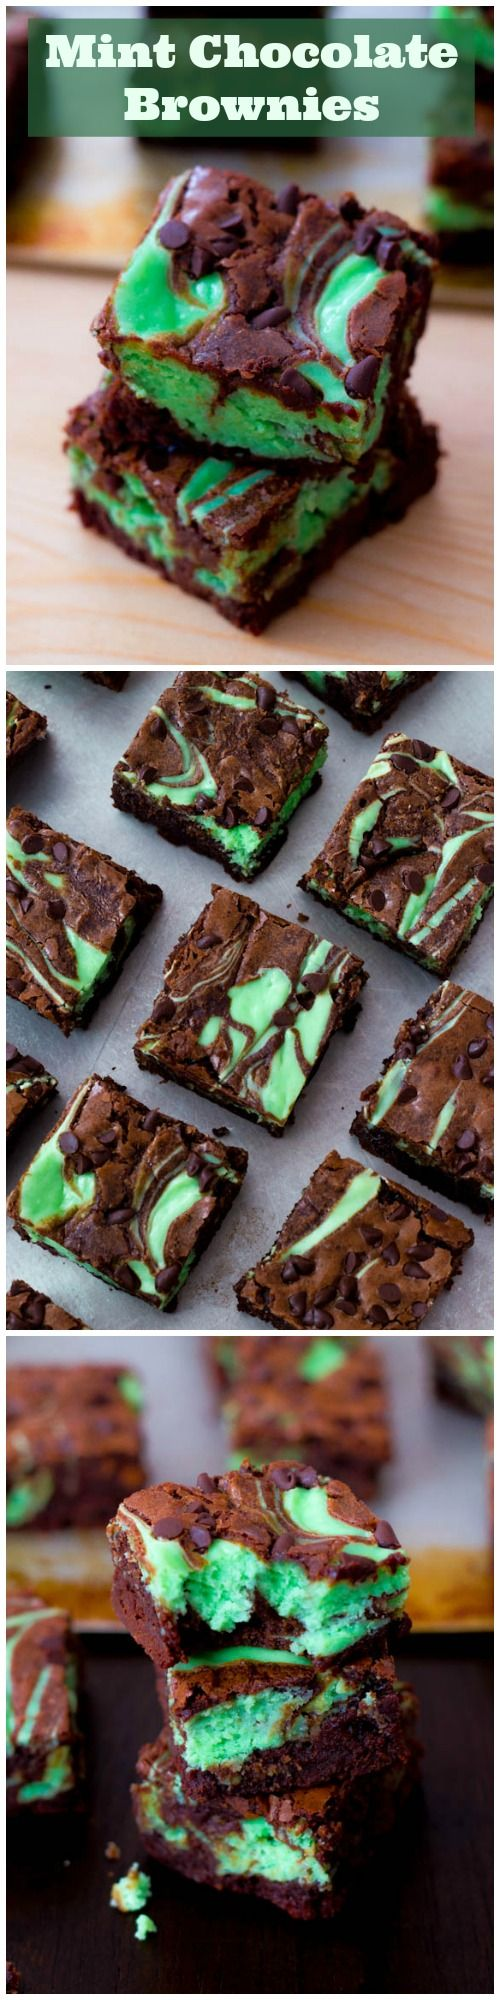 Brownie de Chocolate Menta                                                                                                                                                                                 Más